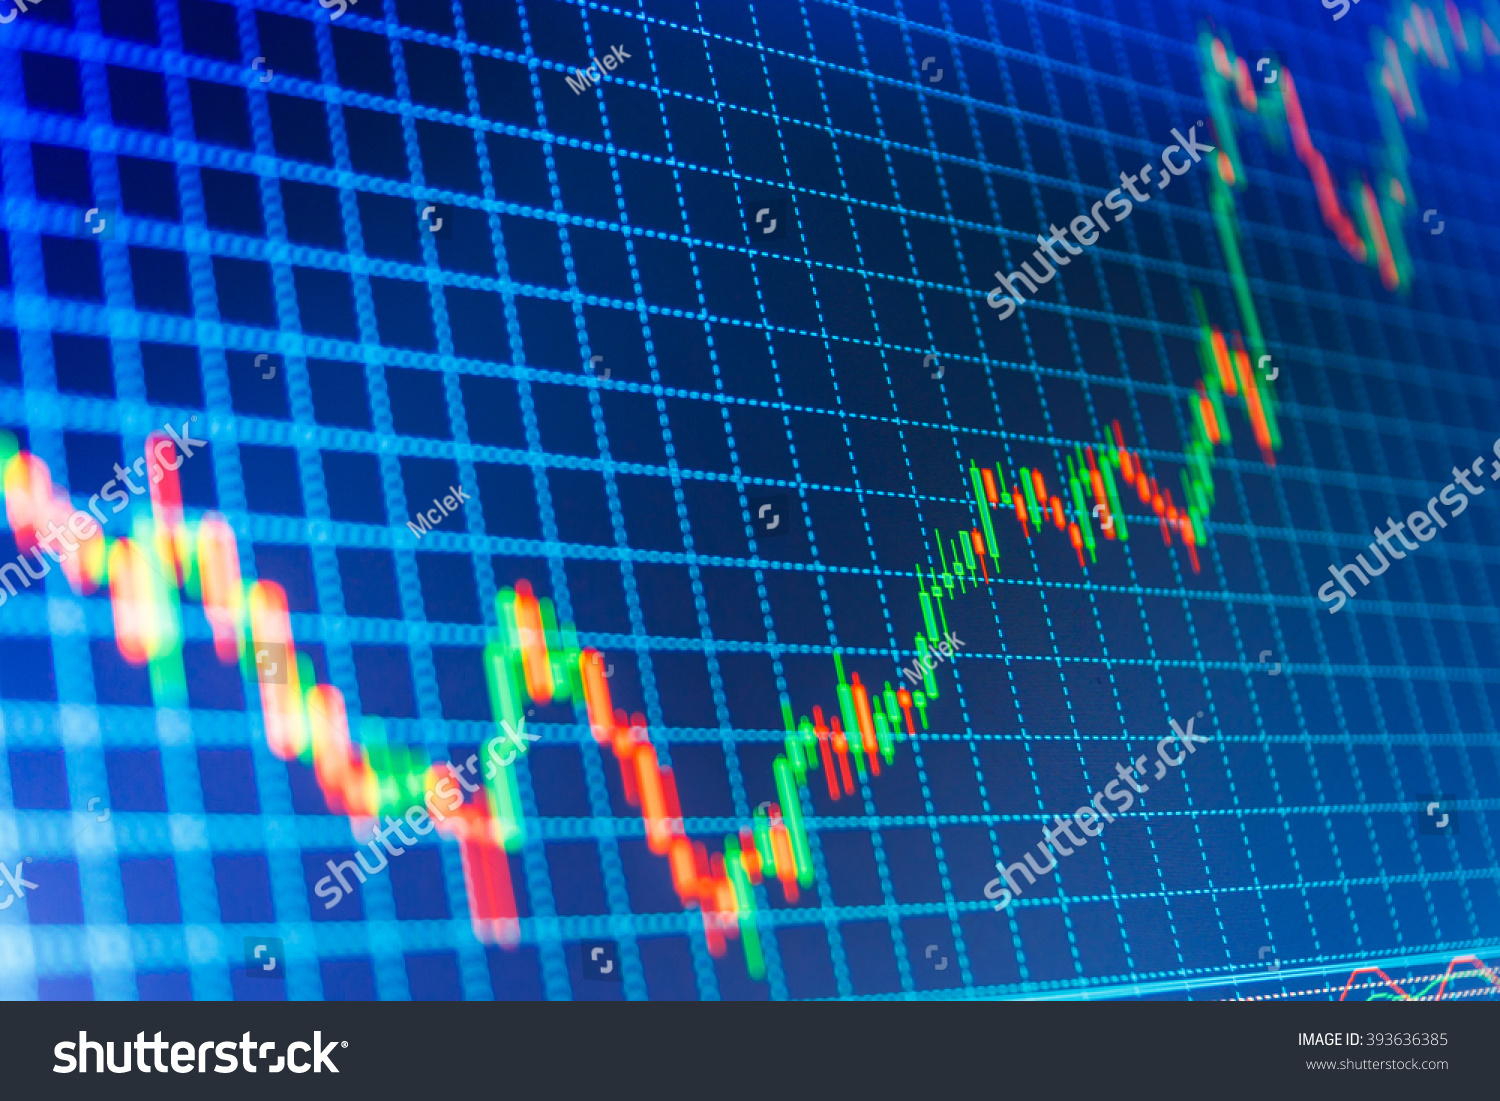 Finance analysis quotes